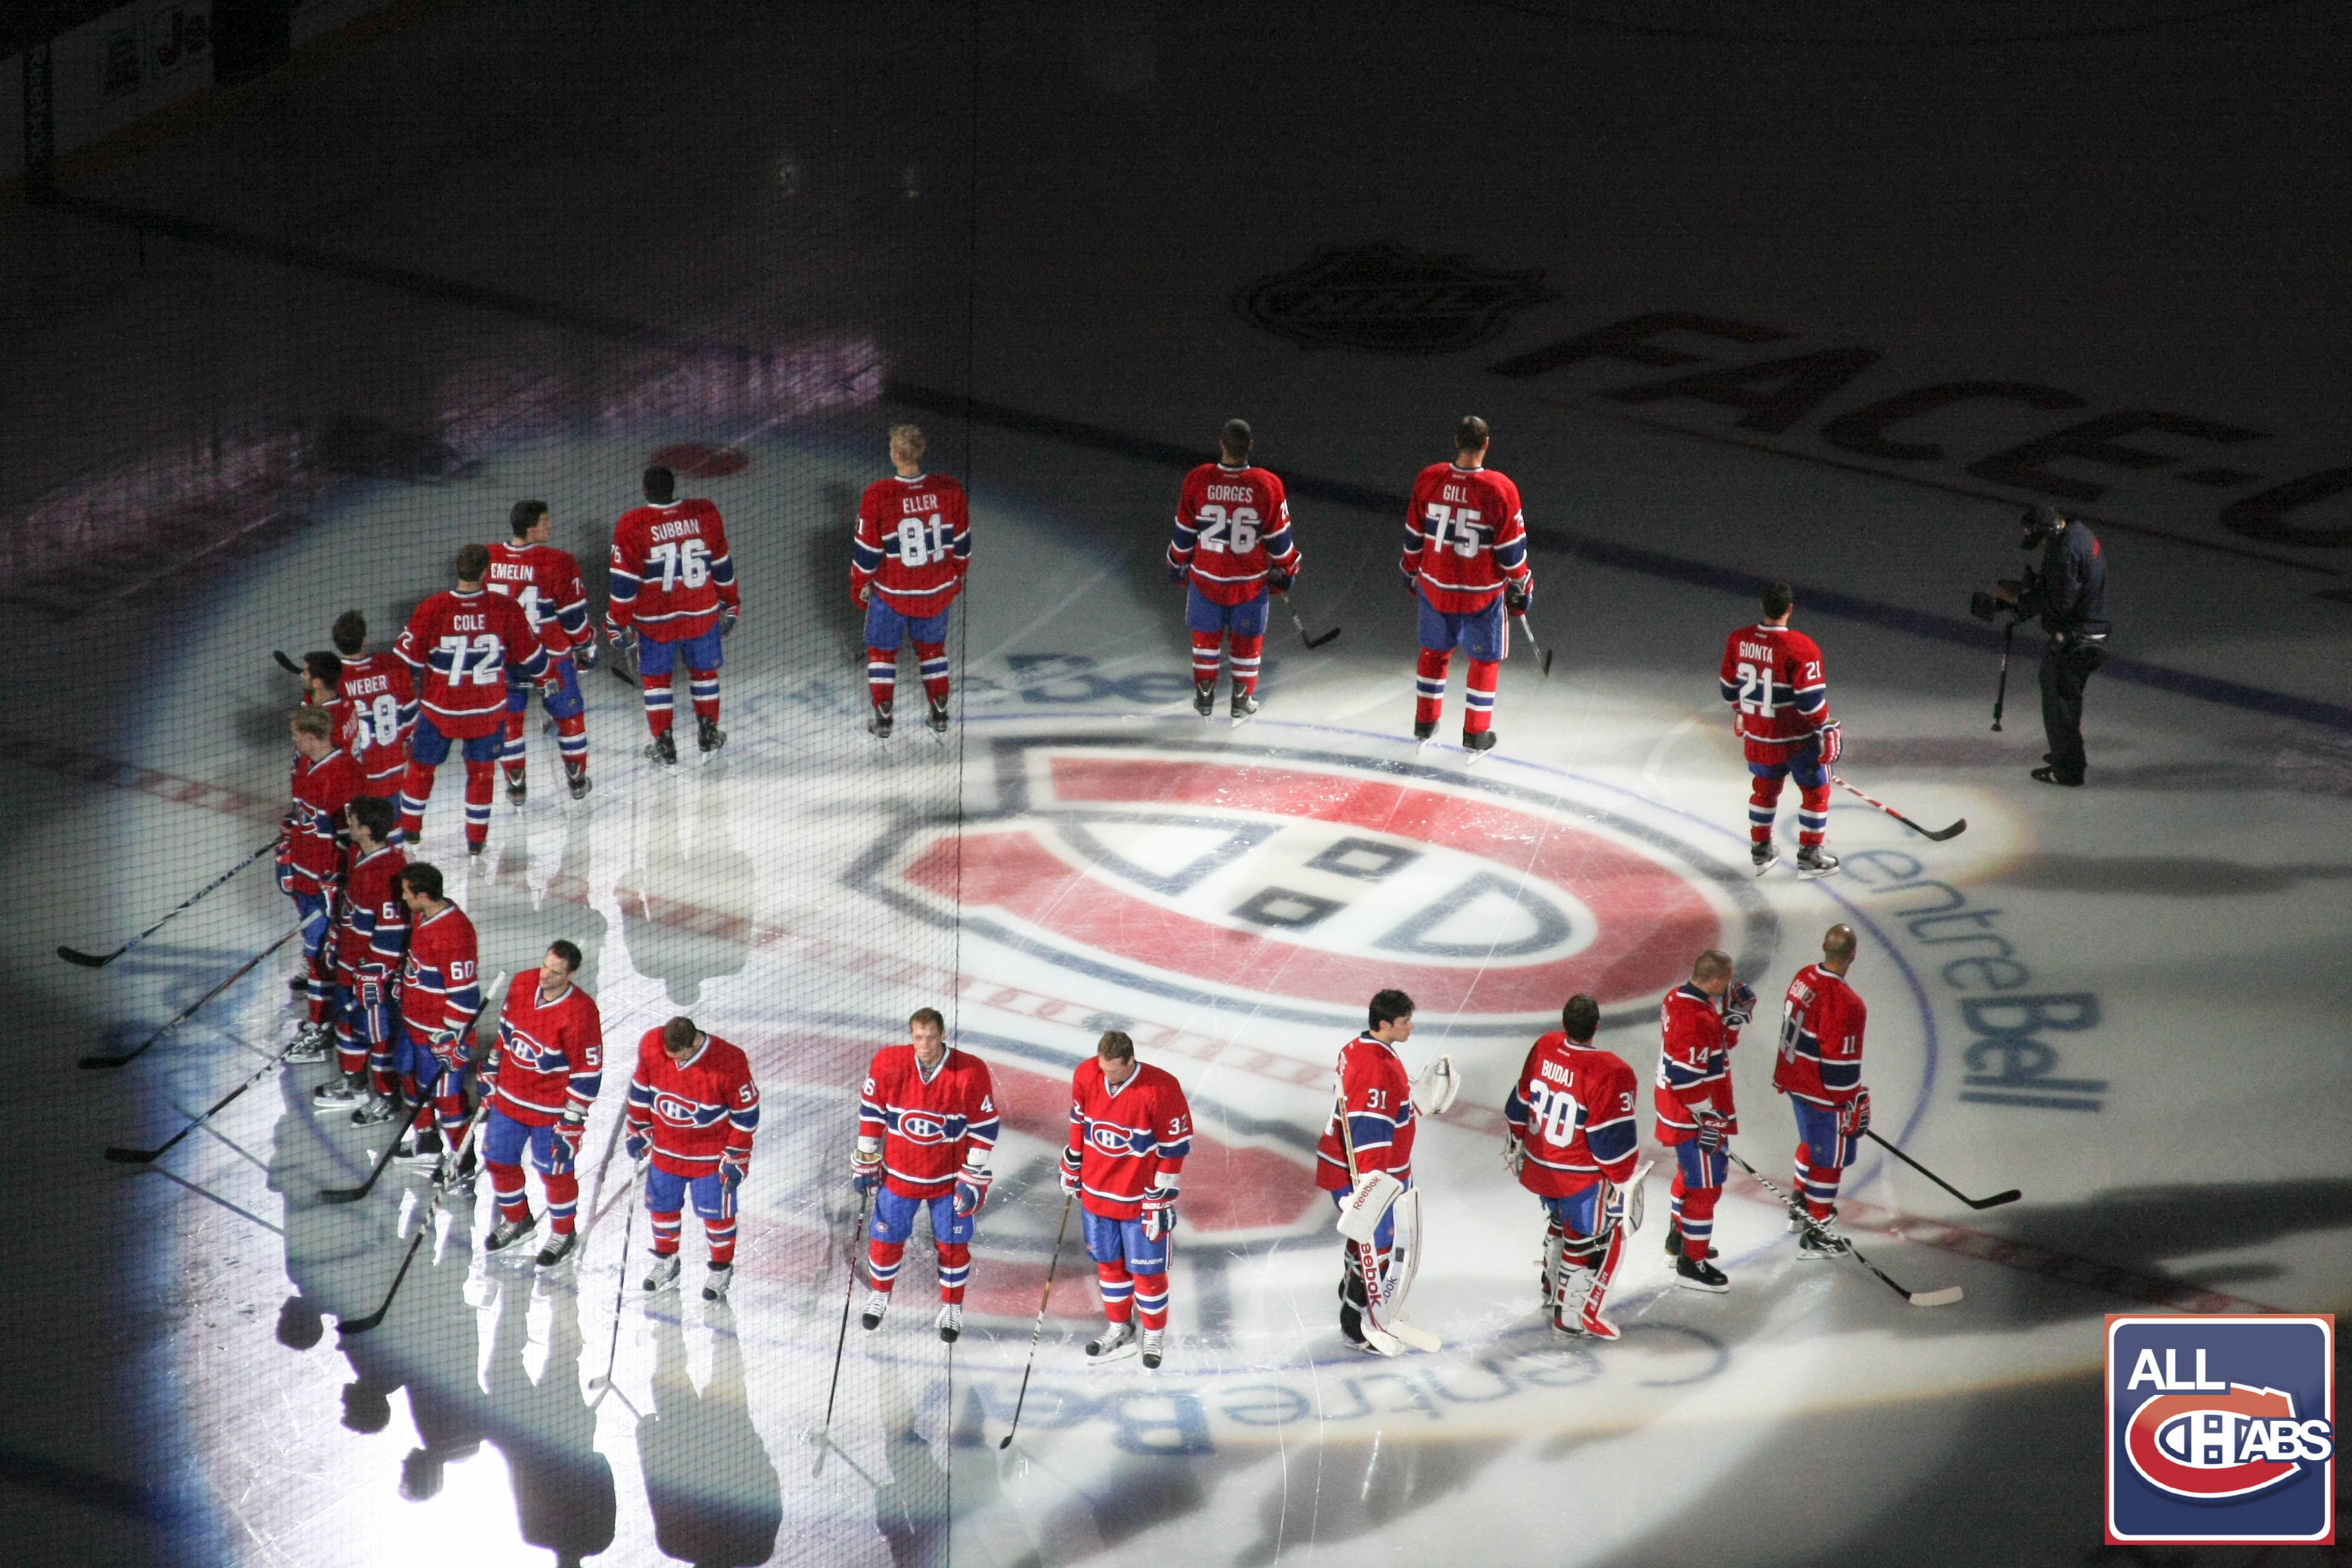 Watch a live Canadiens Game at the Belle Centre Montreal